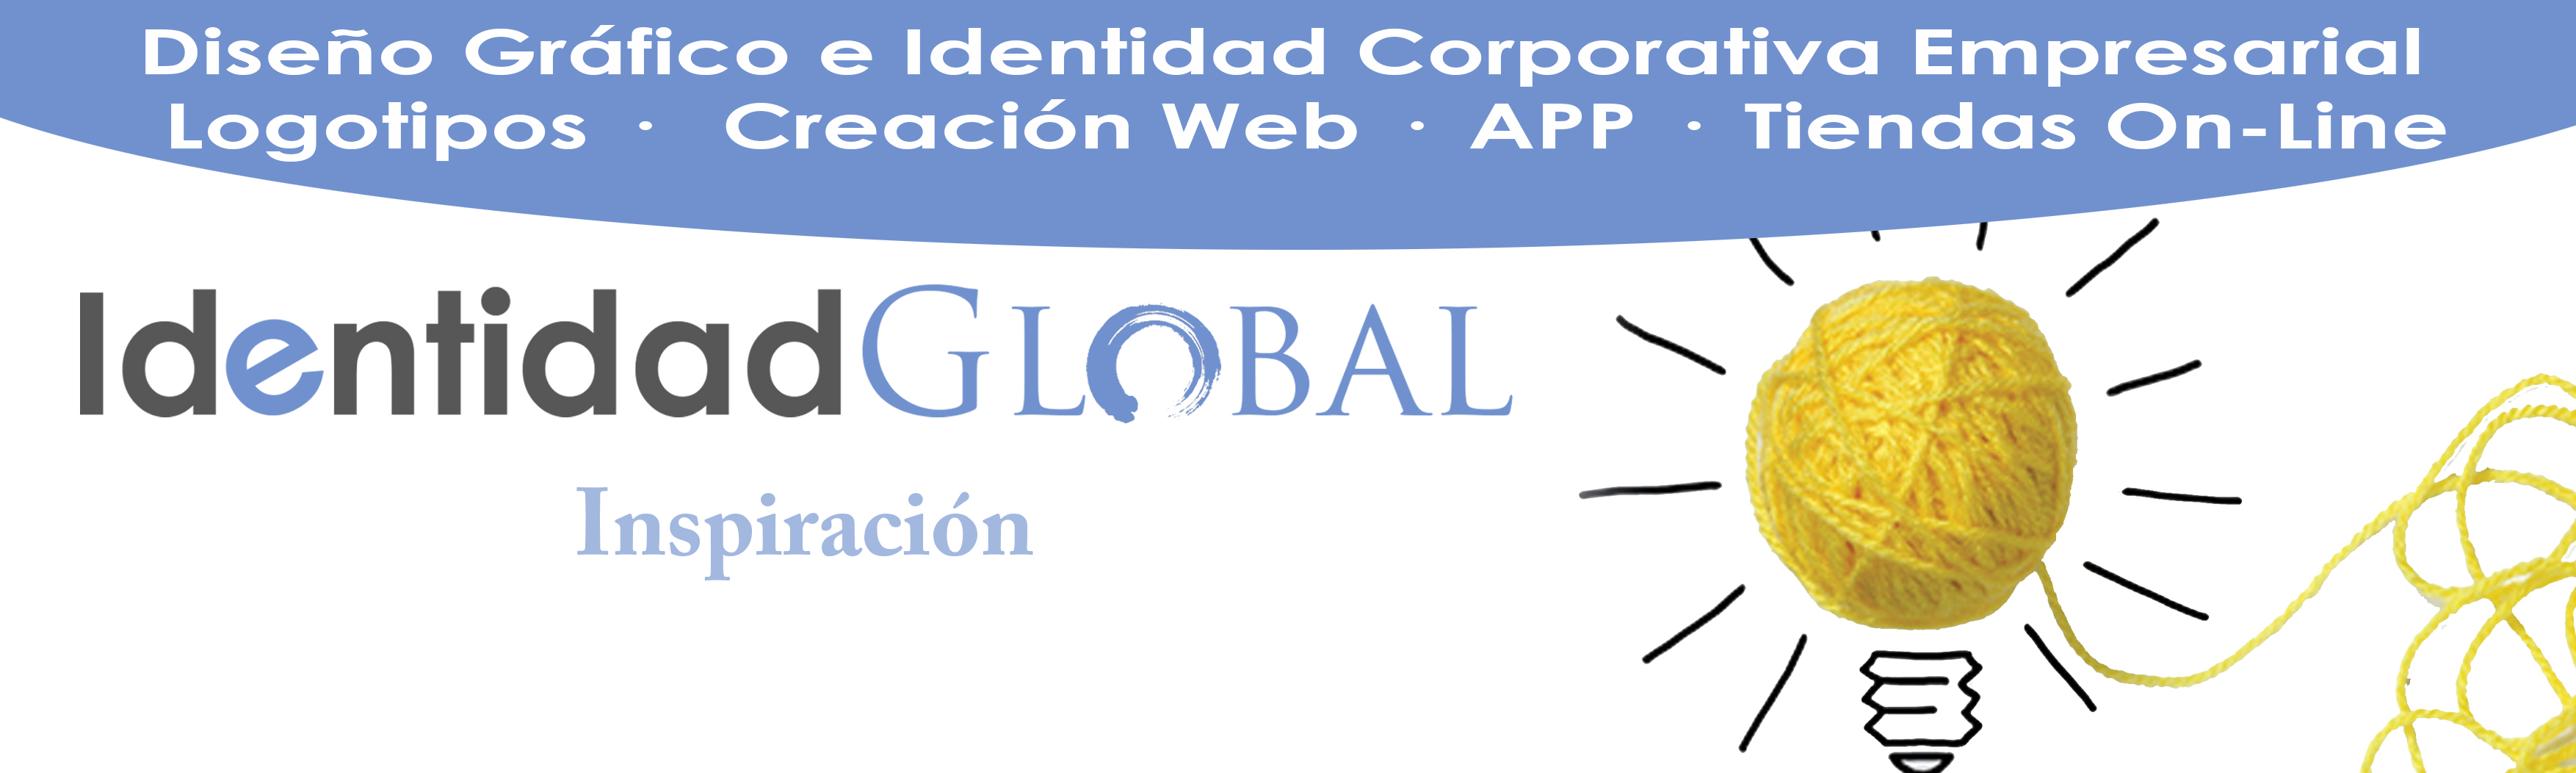 Identidad Global Inspiracion